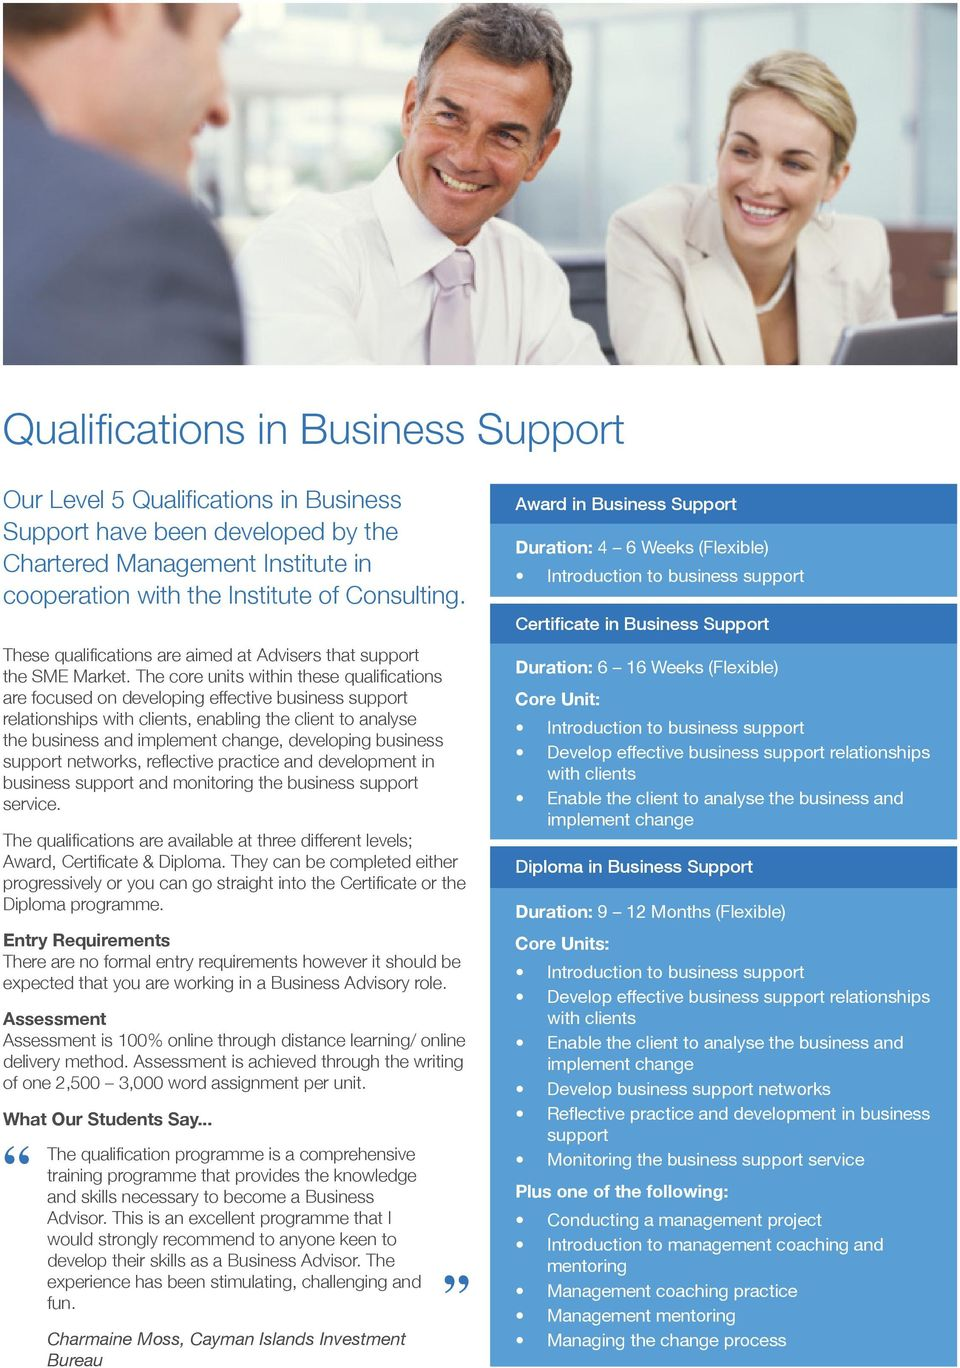 The core units within these qualifications are focused on developing effective business support relationships with clients, enabling the client to analyse the business and implement change,